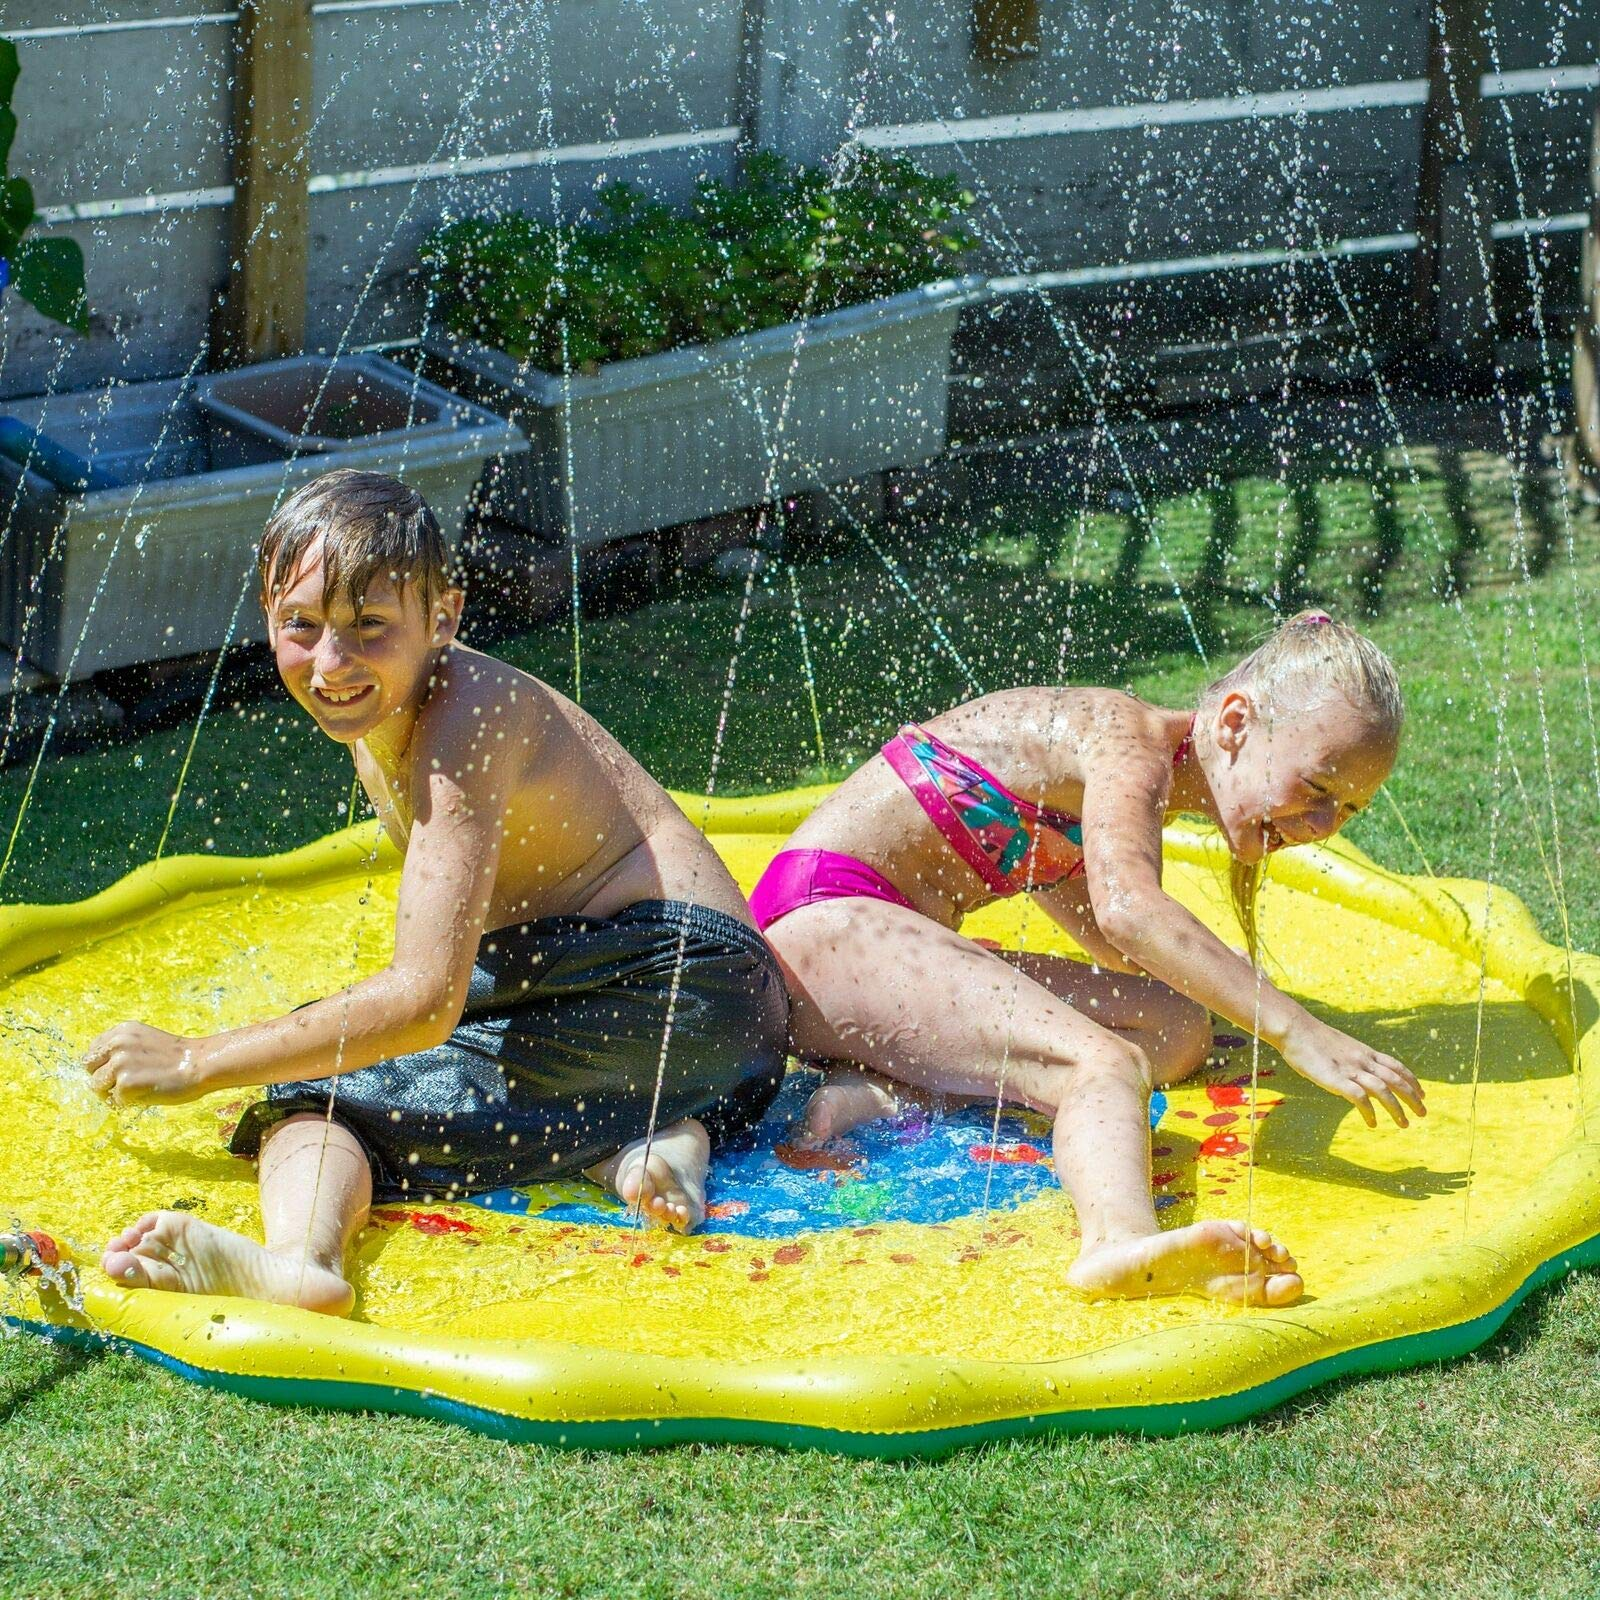 Candywe Splash Pad Kids Toys, 68'' Sprinkle and Splash Play Mat Pad Toy for Children Infants Toddlers Boys Girls and Kids,Water Toys for Summer Fun Backyard Water Play Mat Outside Toys for Kids by Candywe (Image #7)